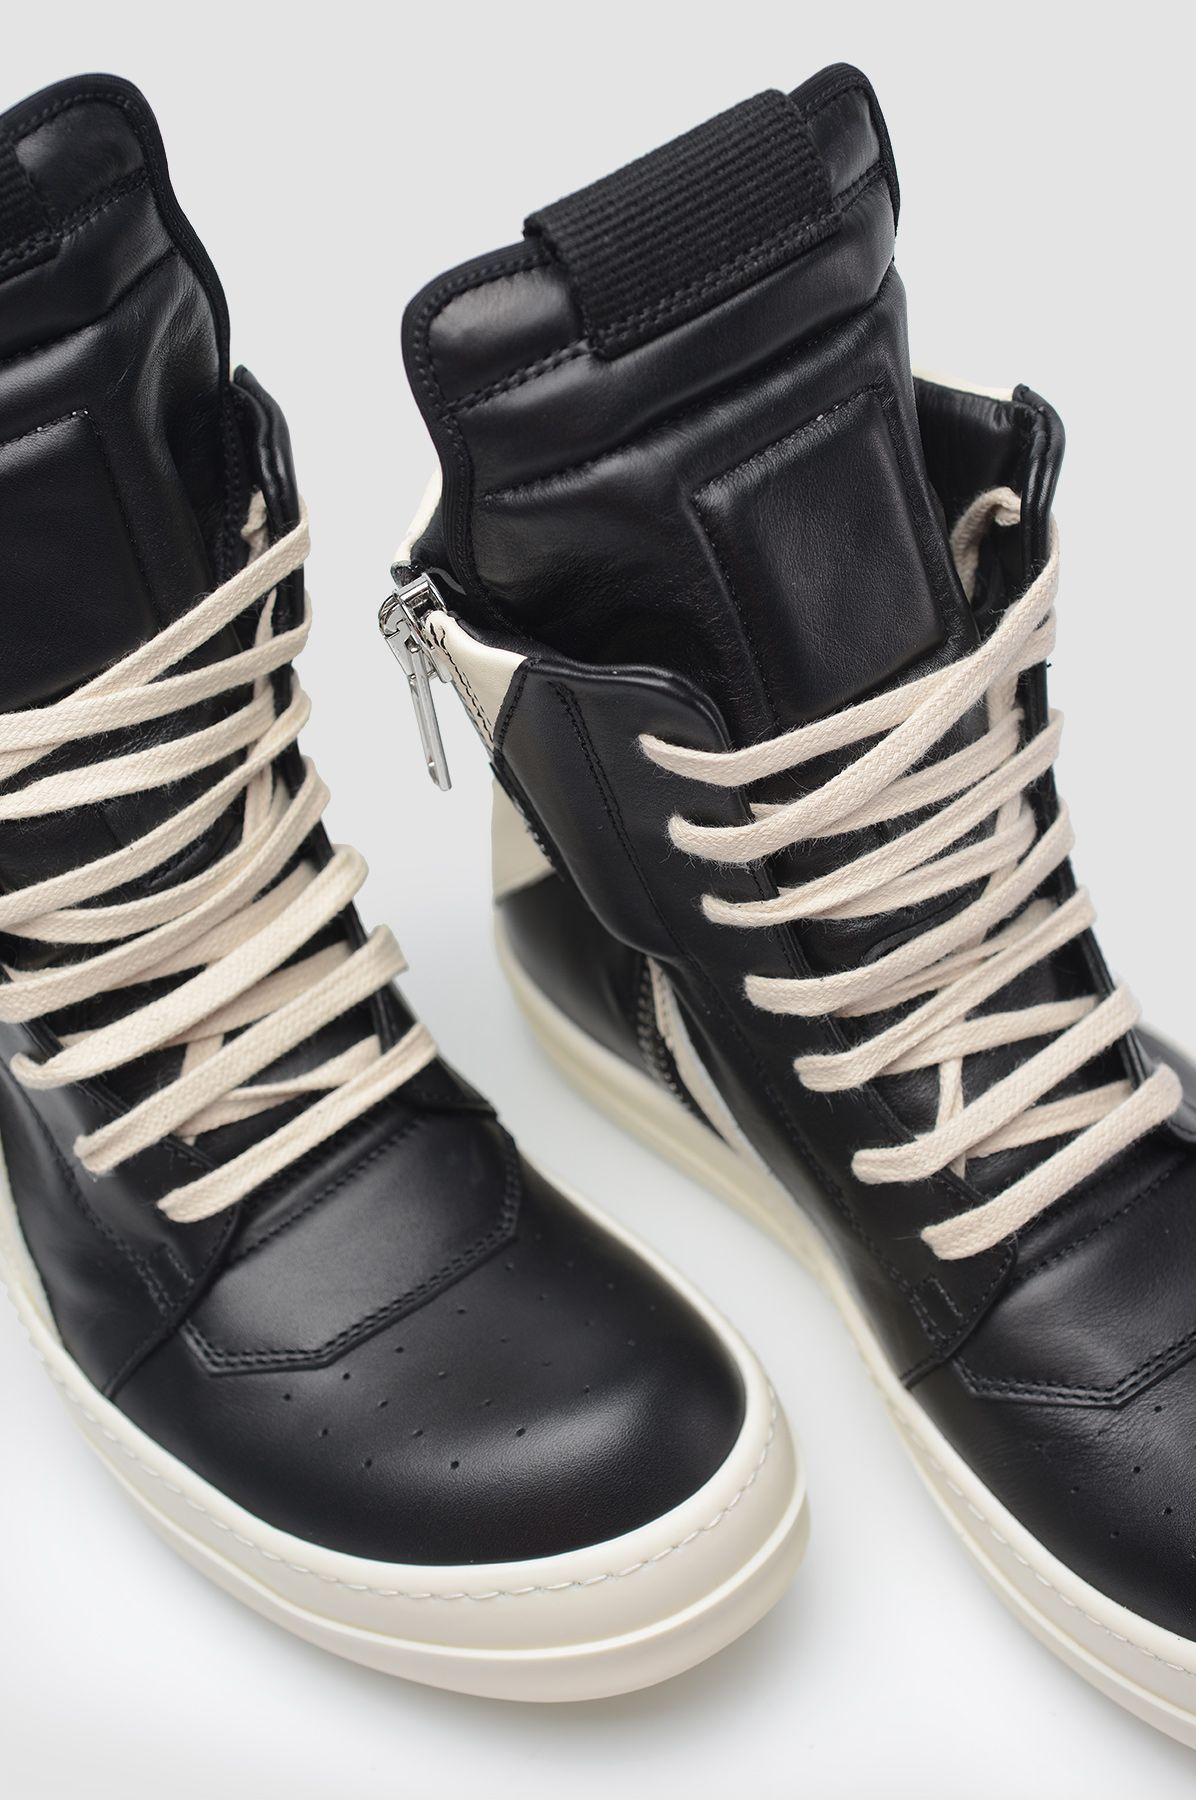 bf118c18601546 Black lace up high top sneakers. Off-white sole and laces. Zipper closure.  Upper  100% Calf Leather Sole  100% Rubber Made in Italy